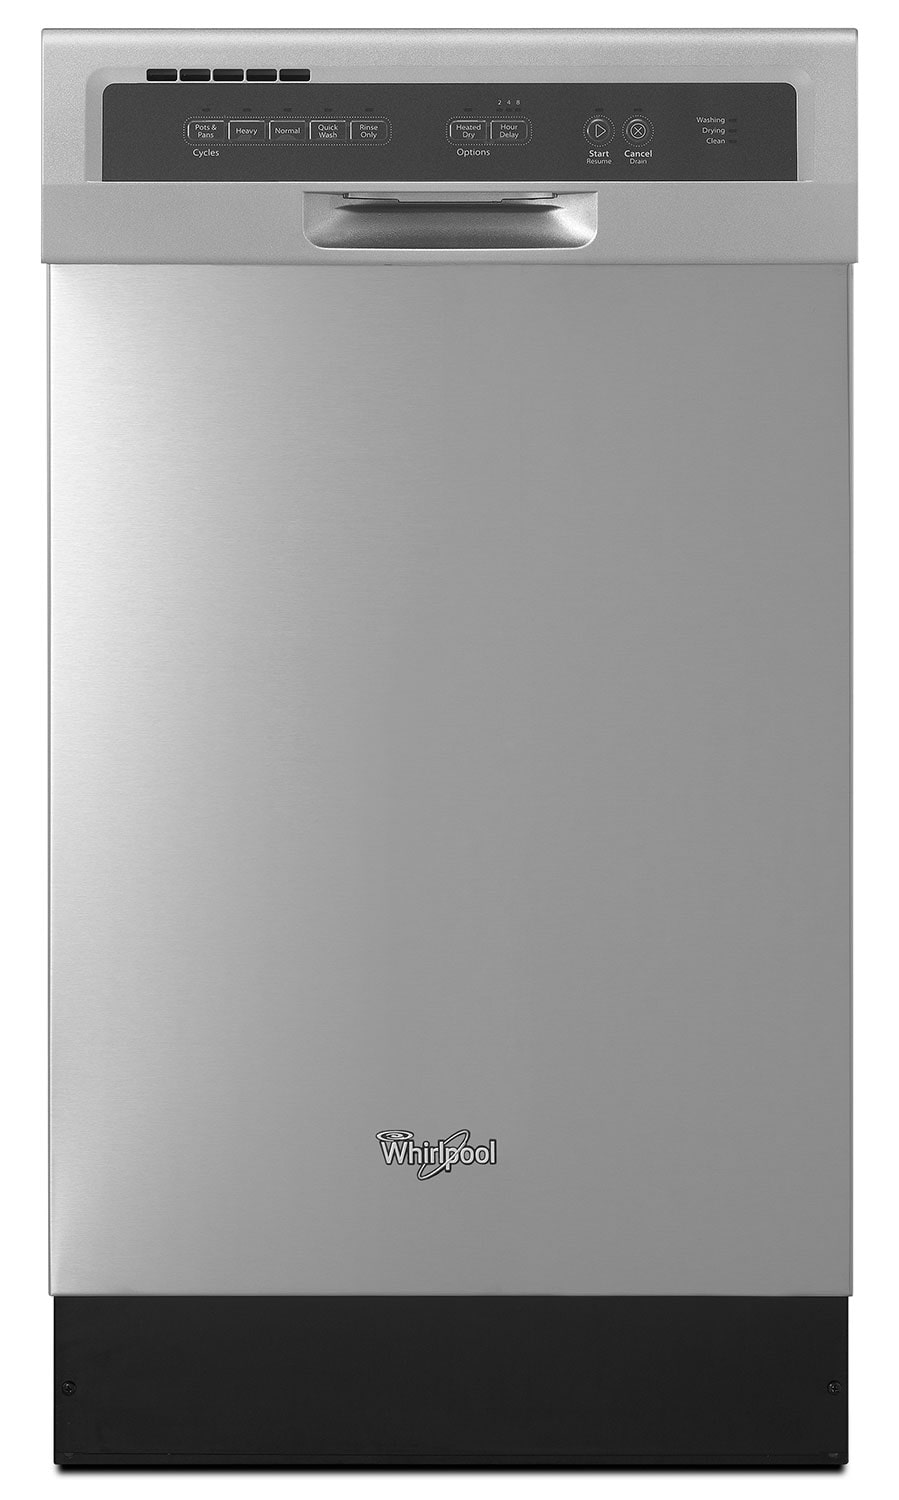 Whirlpool Compact Tall-Tub Dishwasher – WDF518SAFM